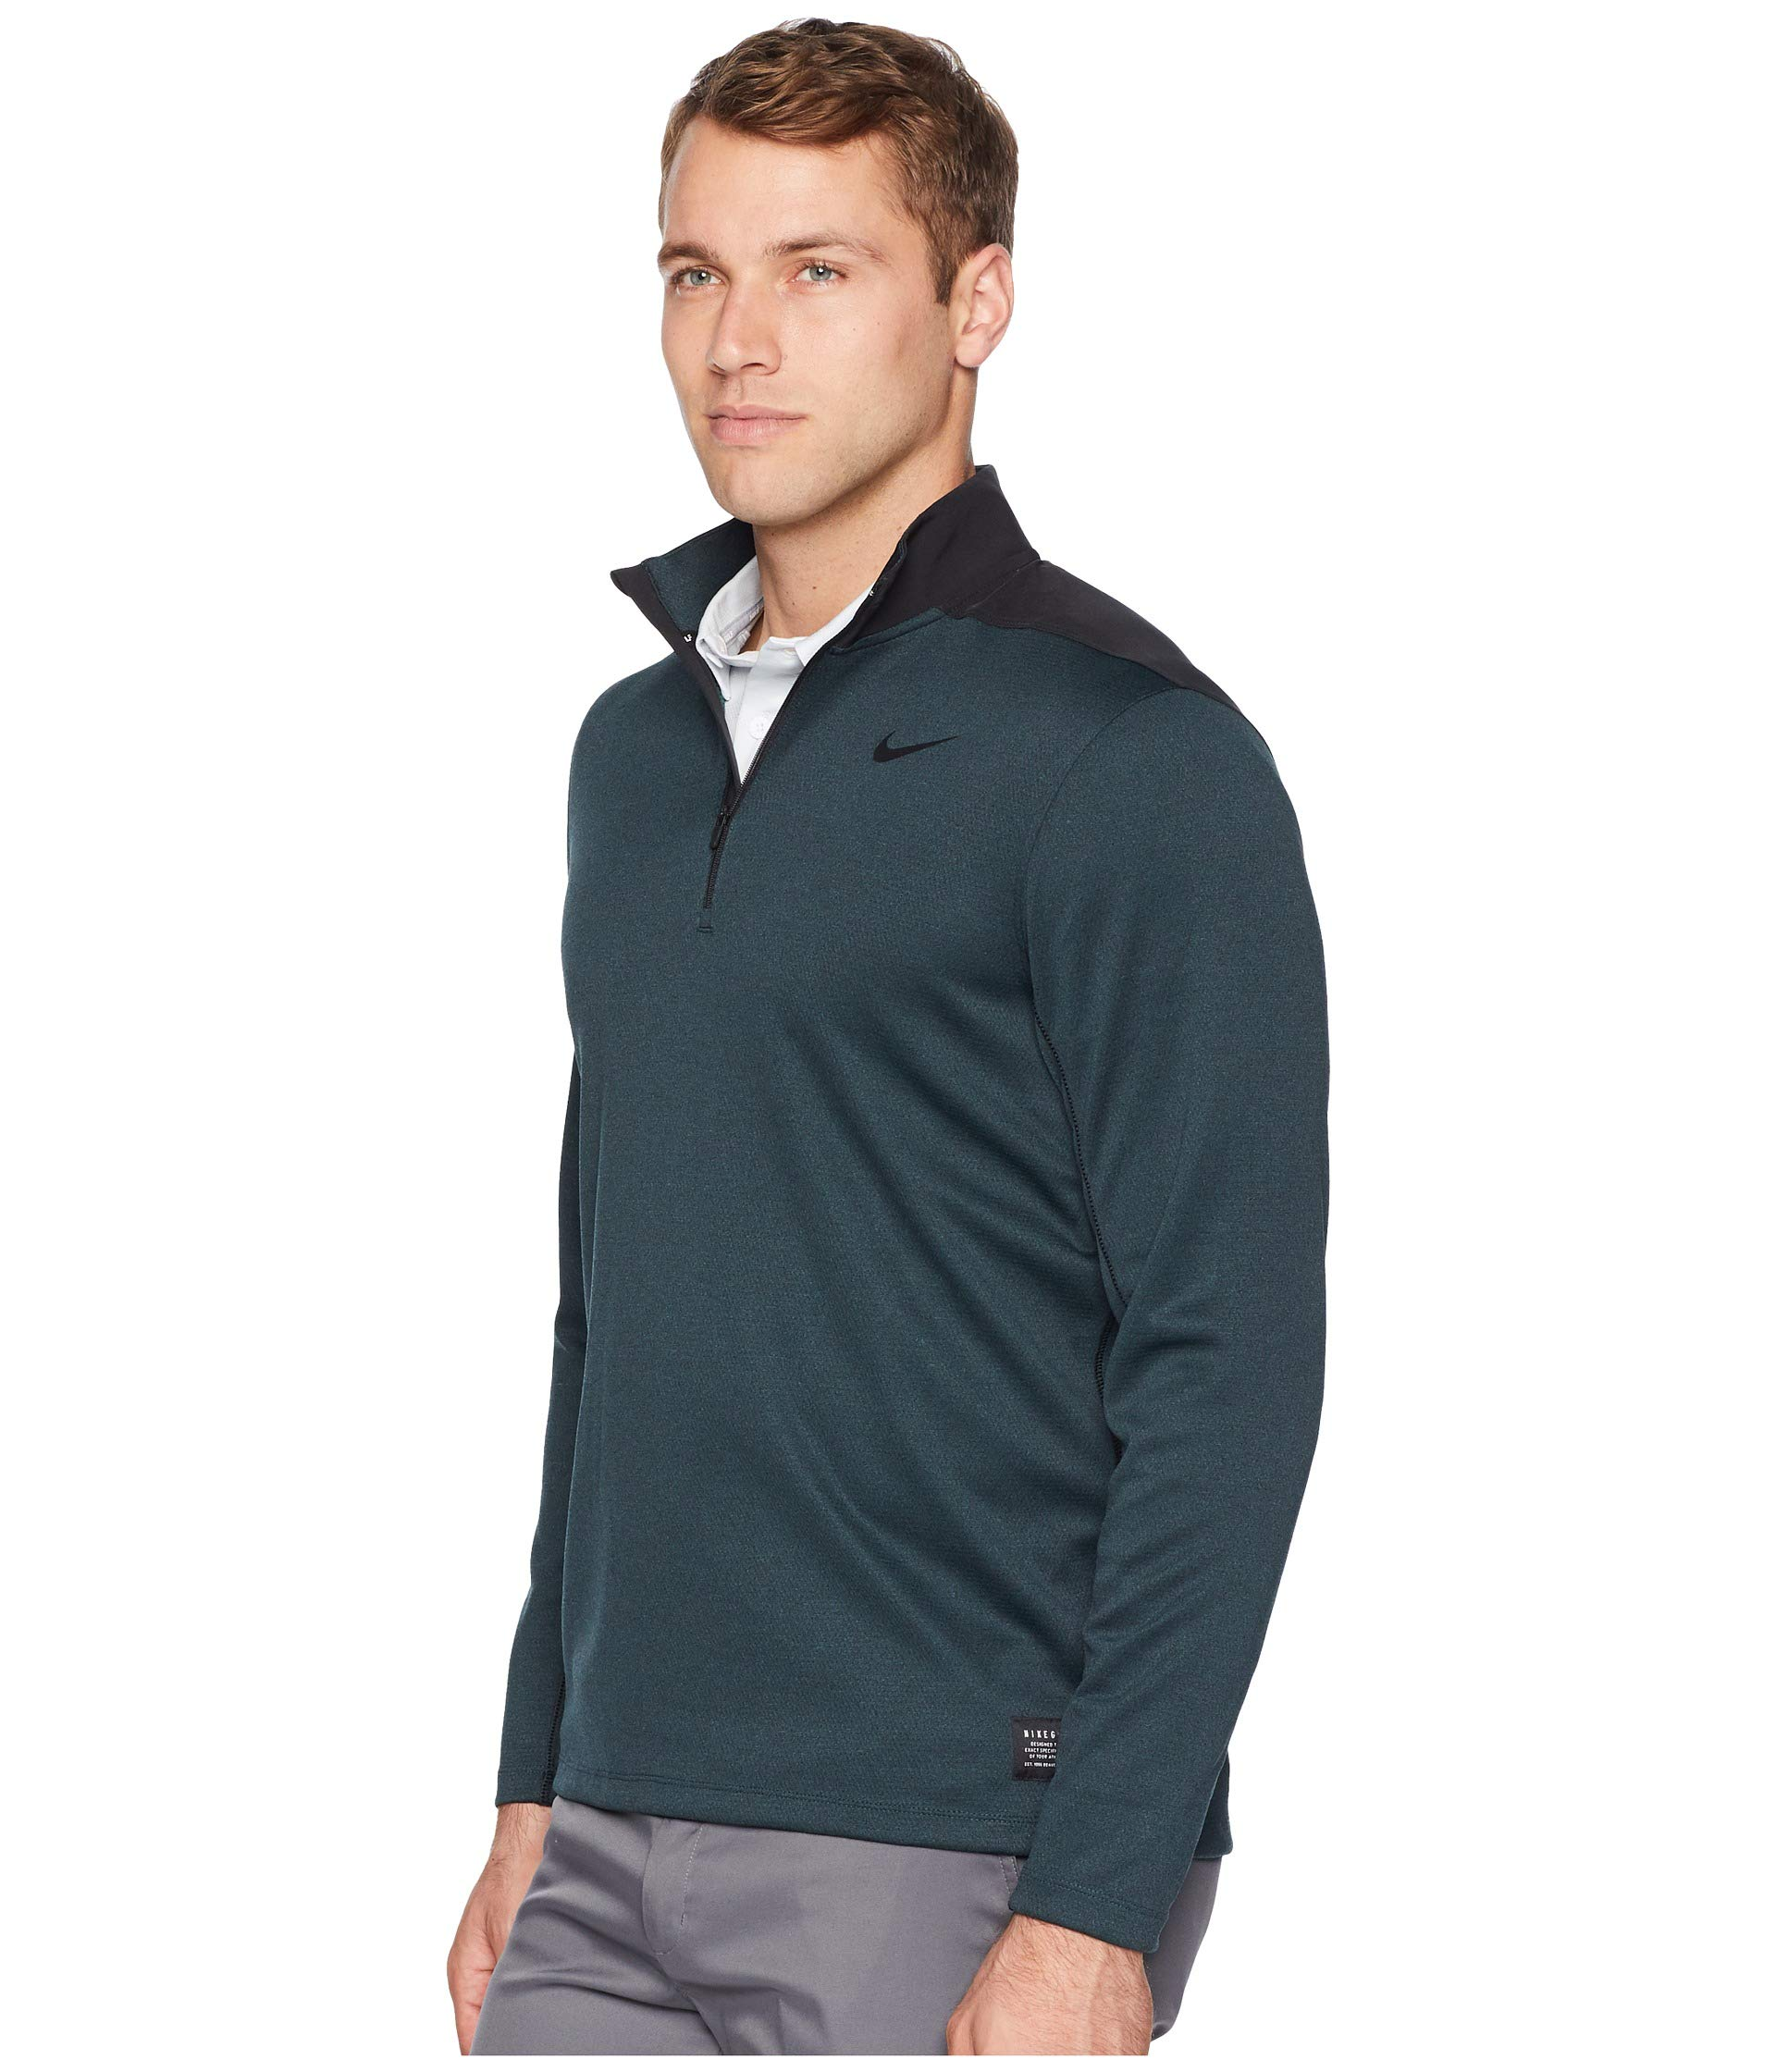 Nike Men's Dry Top Half Zip core Golf Top (Black Midnight Spruce, Small) by Nike (Image #2)